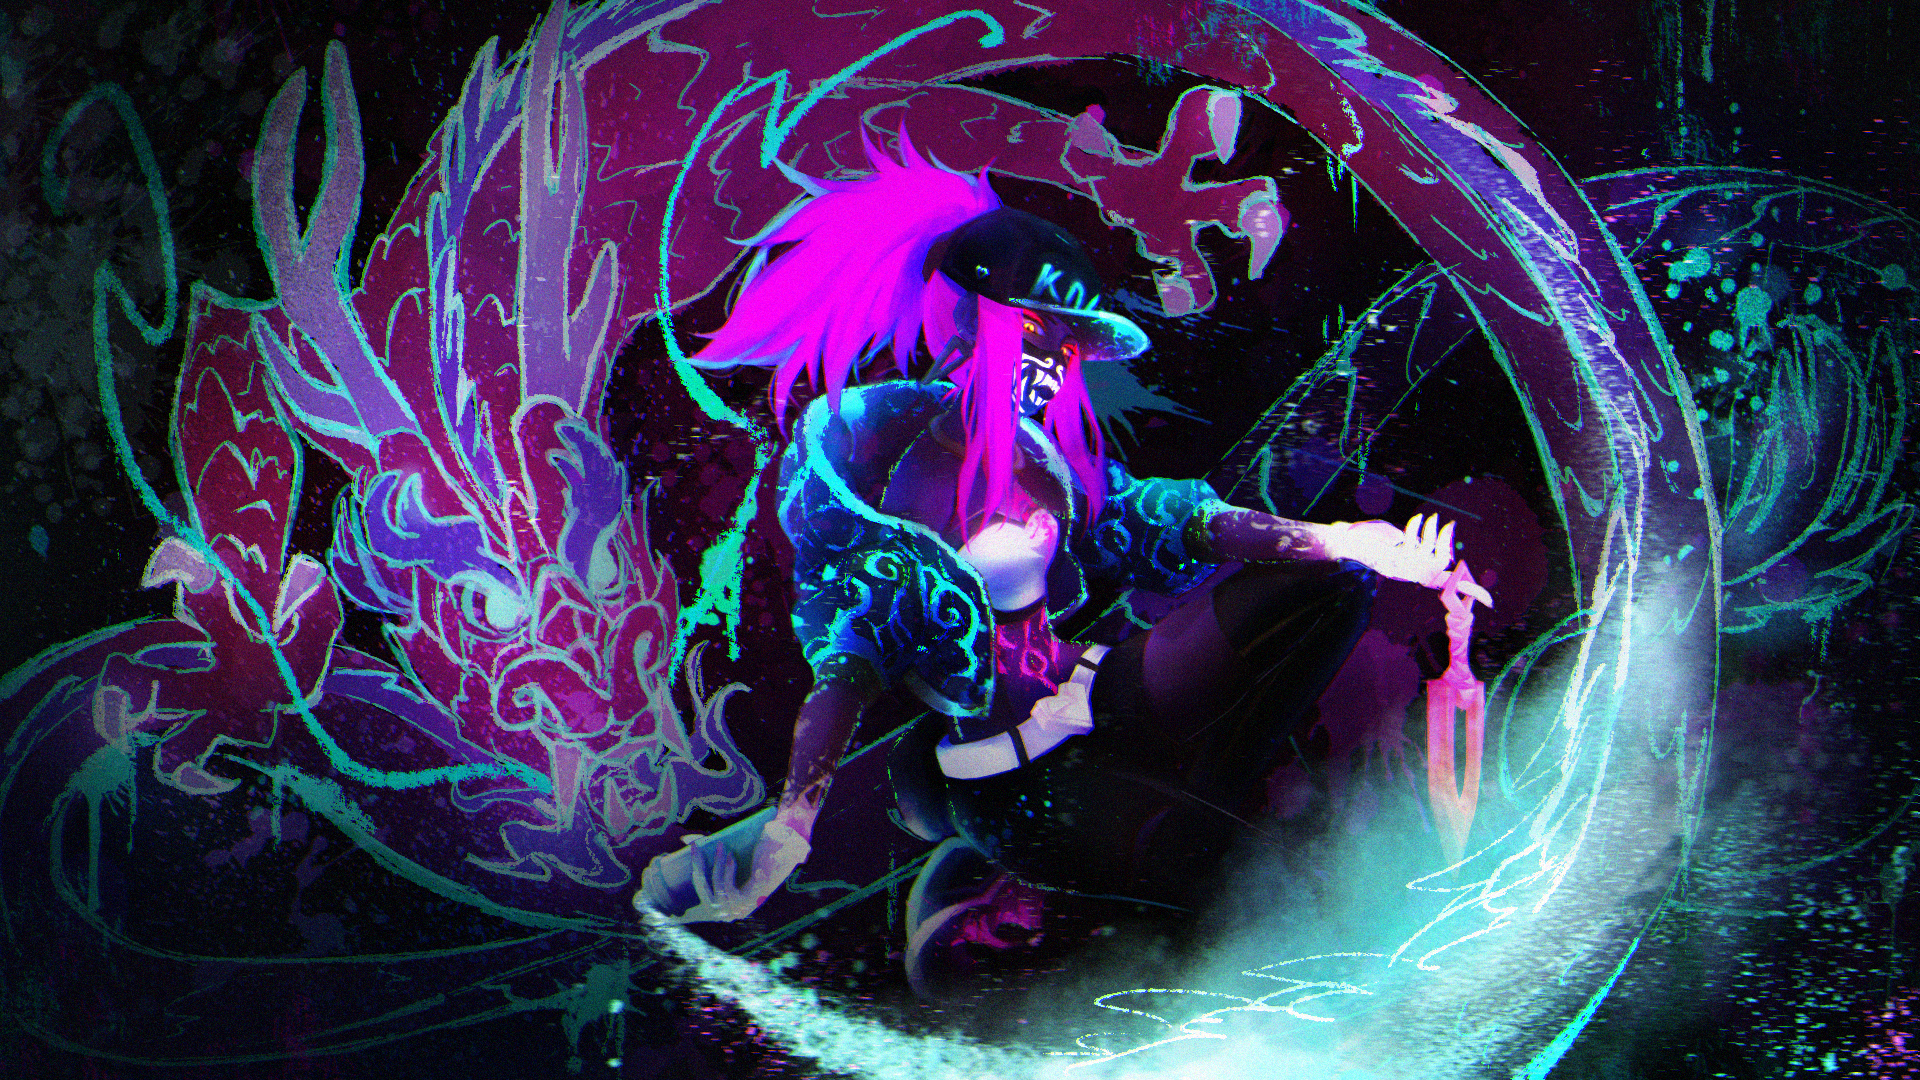 Akali League Of Legends Zerochan Anime Image Board